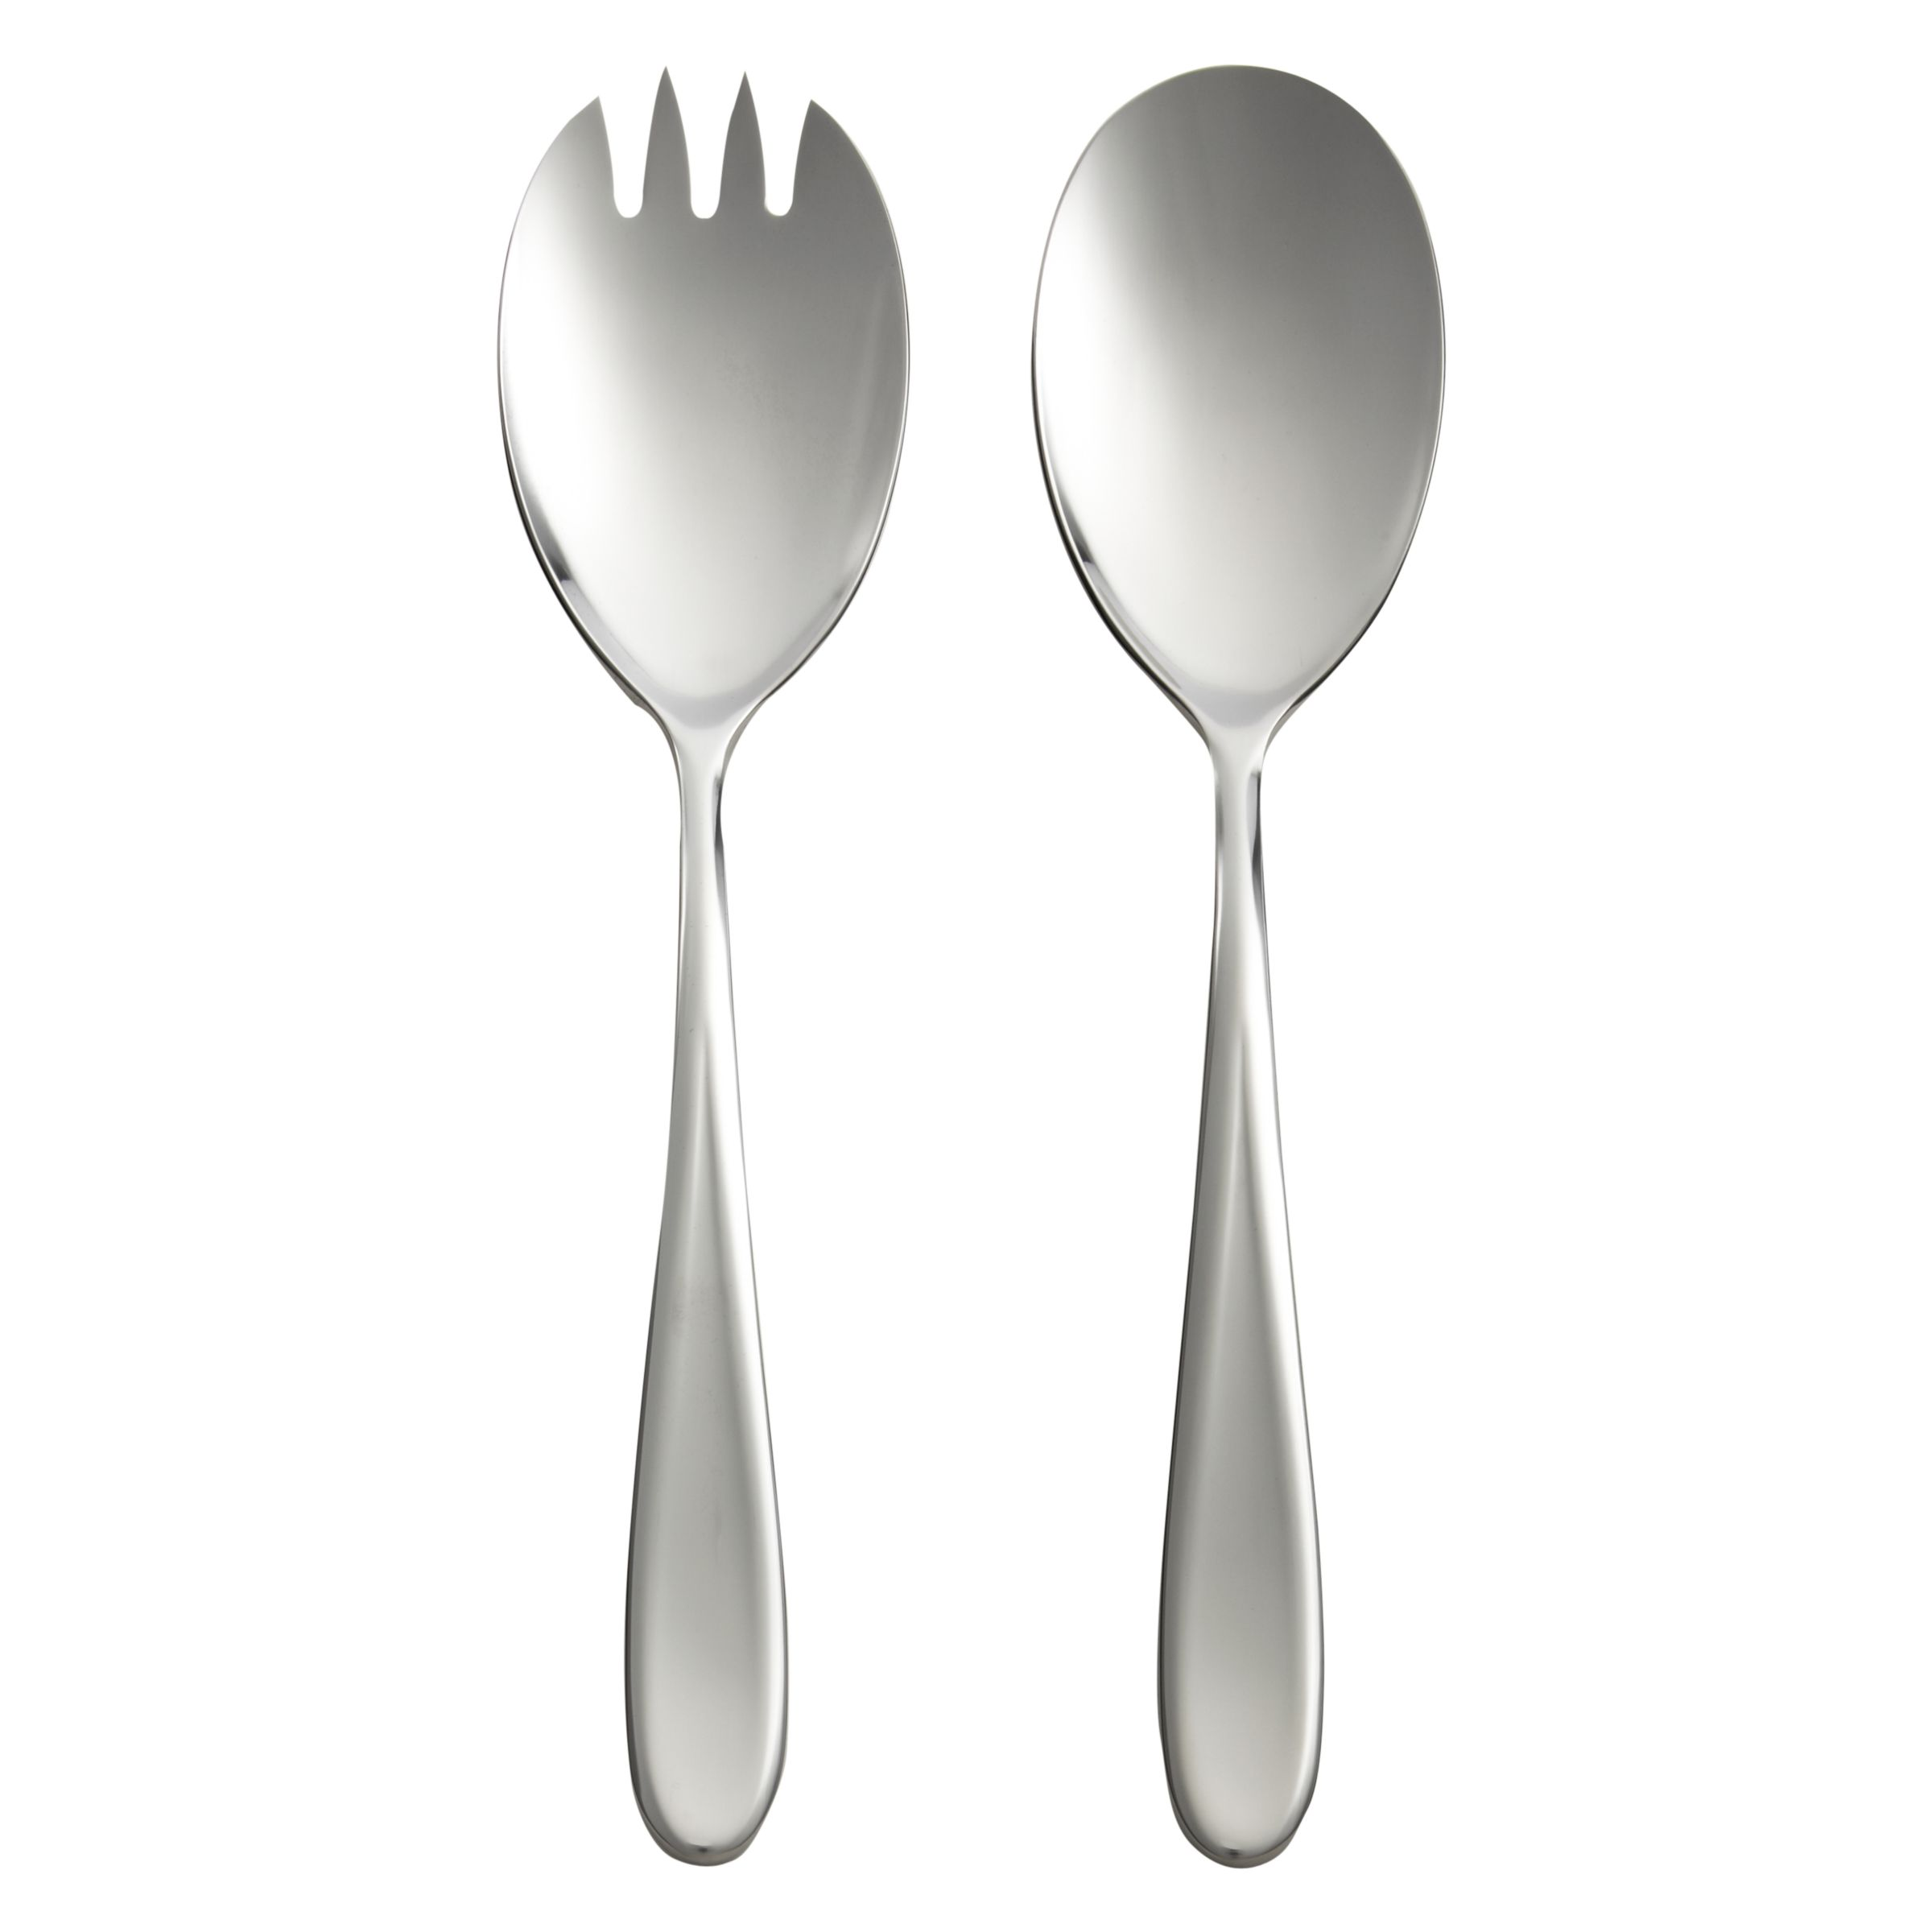 Sophie Conran for Arthur Price Sophie Conran for Arthur Price Rivelin Salad Servers